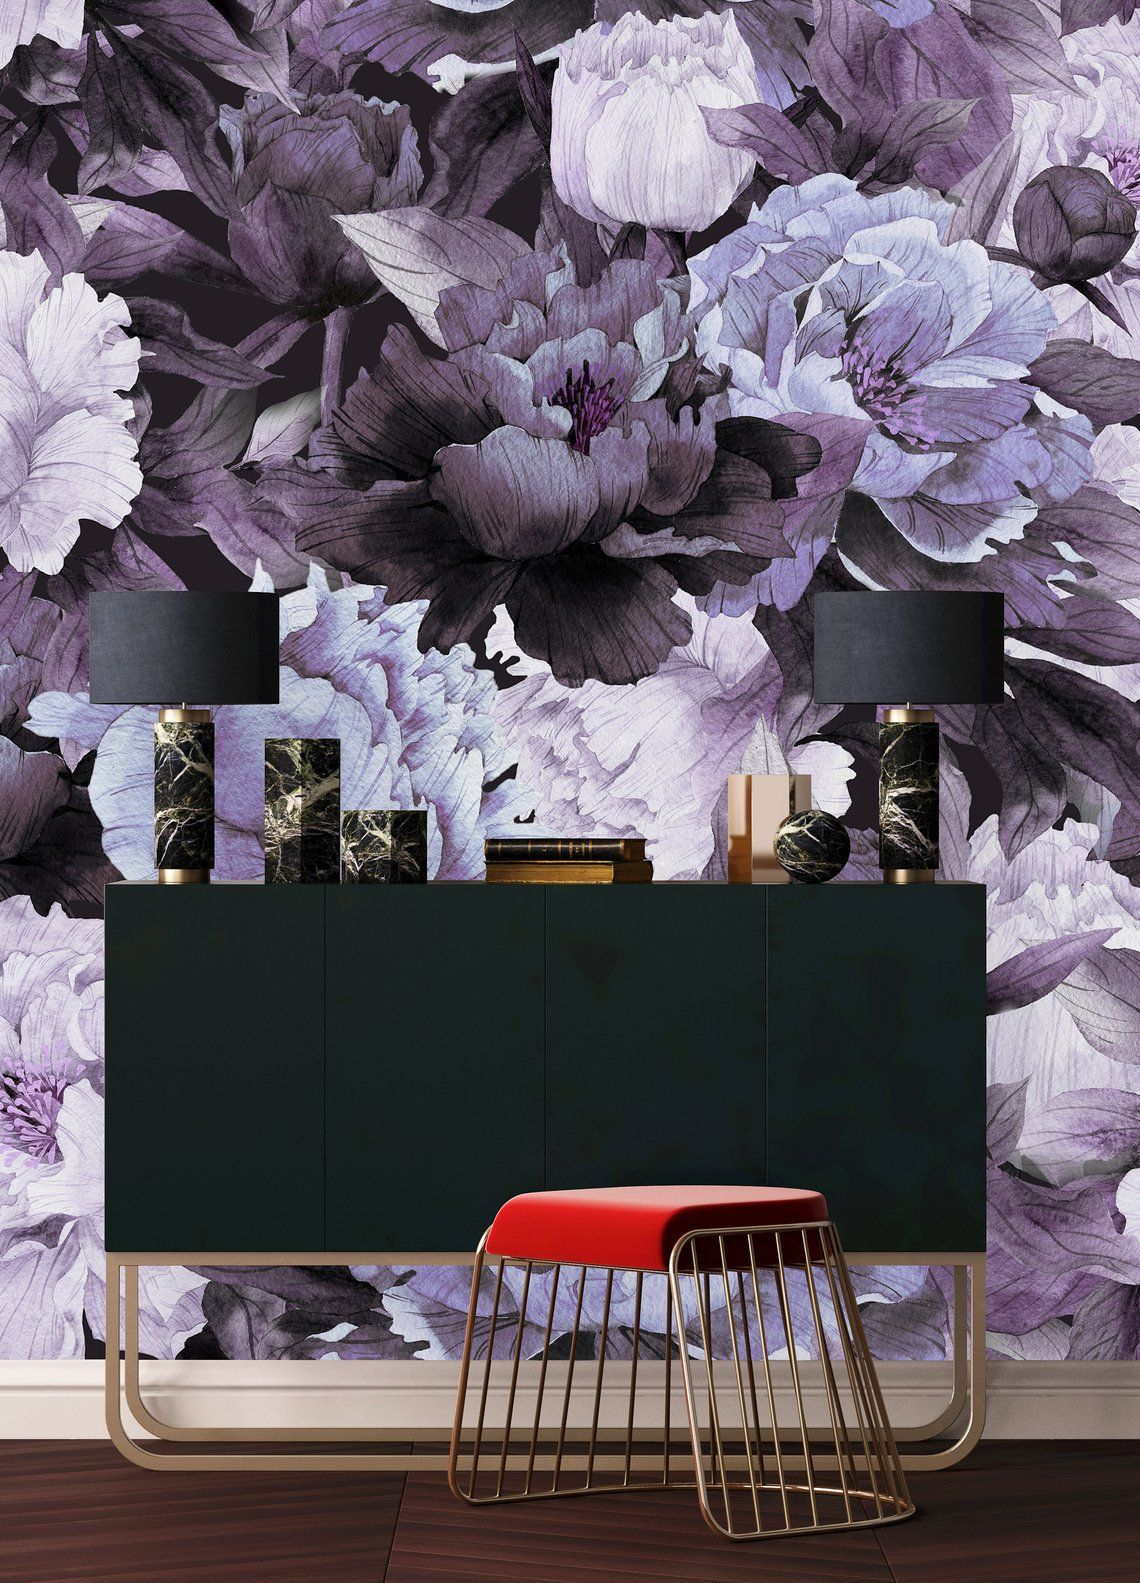 How To Put Up Non Adhesive Wallpaper